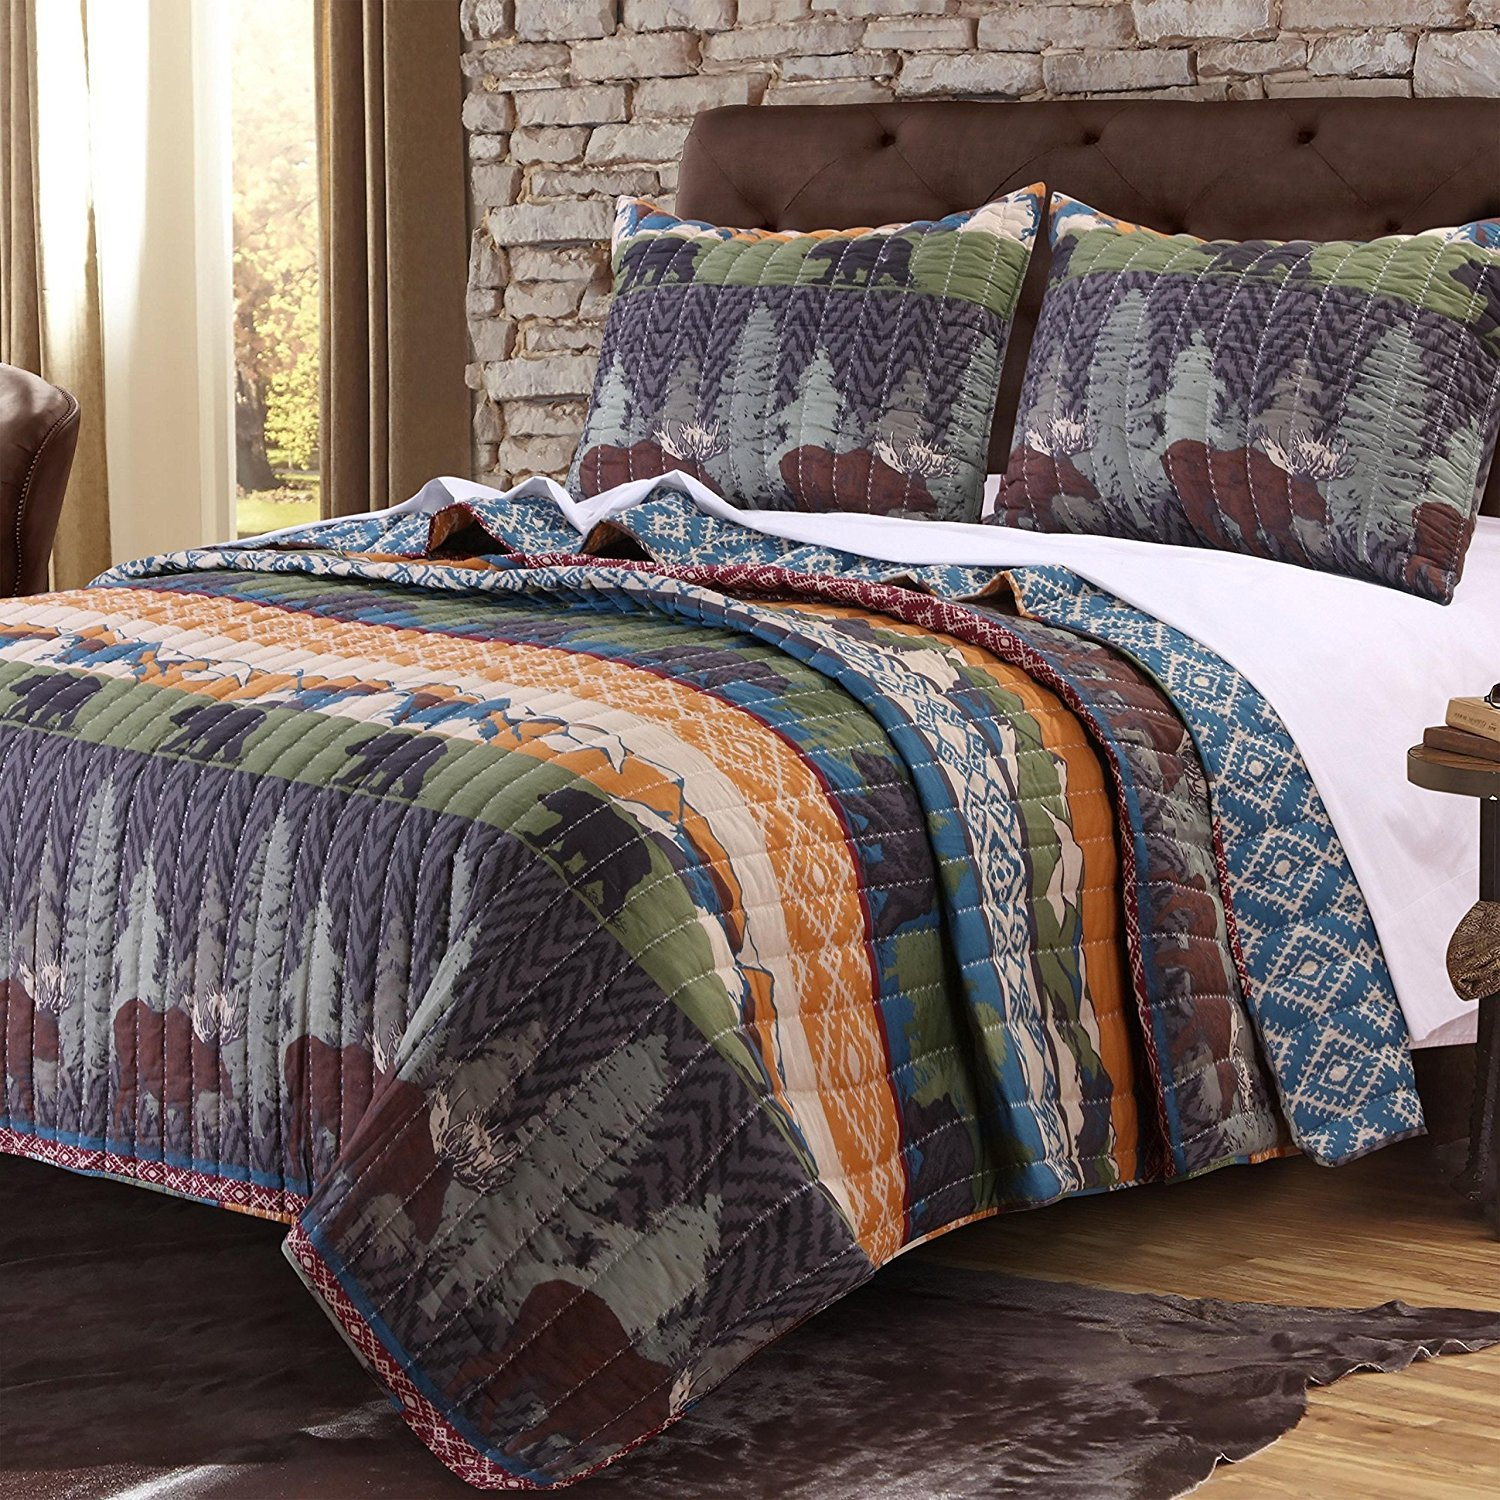 3pc Blue Green Orange Grey Full Queen Quilt Set, Cotton, Rustic Cabin Wildlife Bears Pattern Themed Bedding Animal Lodge Cottage Nature Outdoors Forest Wild Wilderness Trees